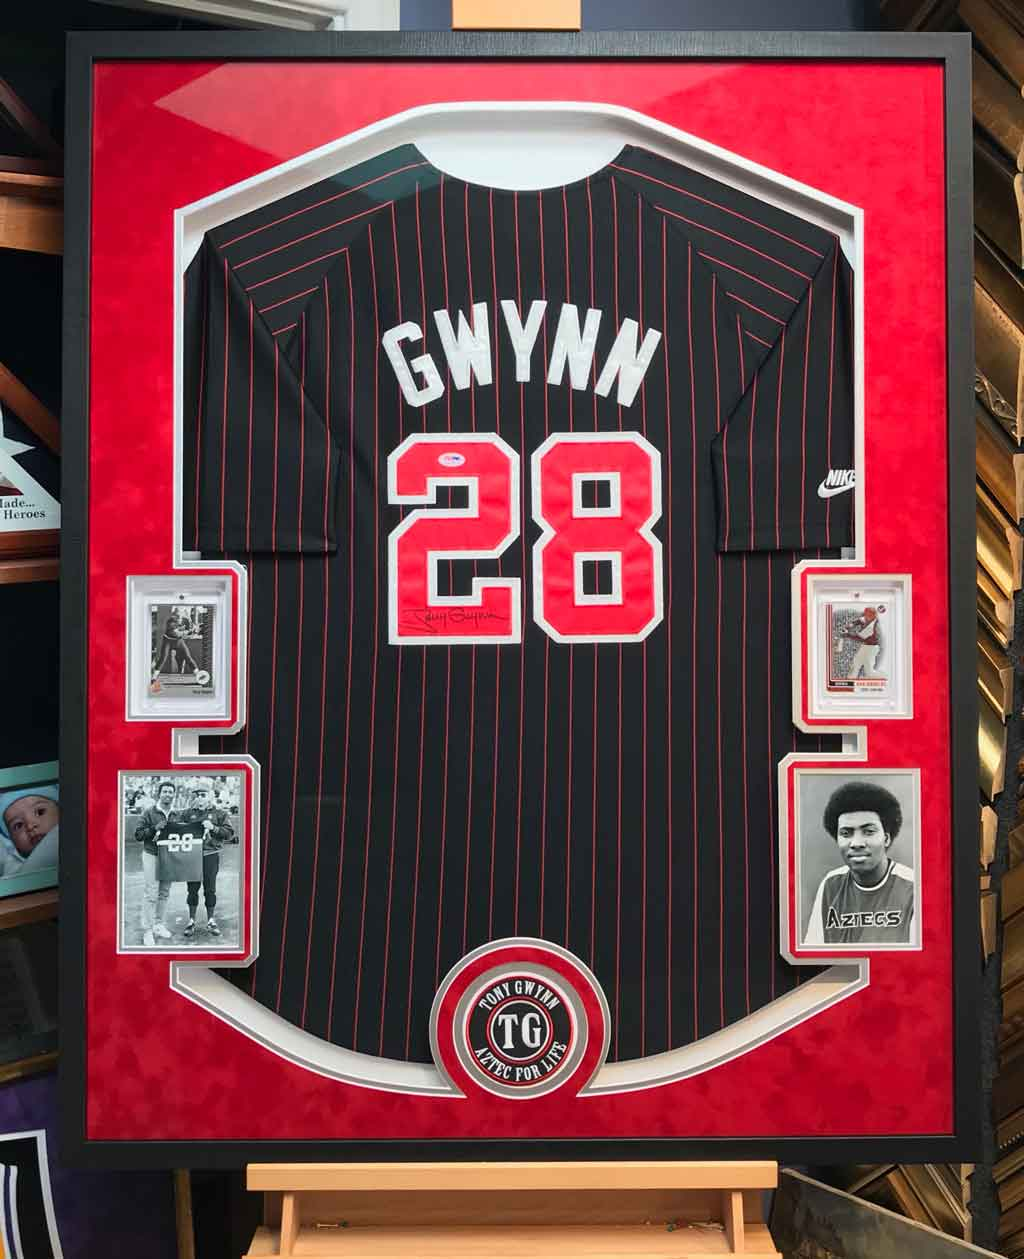 Jersey Framing by Jacquez Art - Tony Gwynn Signed Jersey with Cards, Photos and Patch